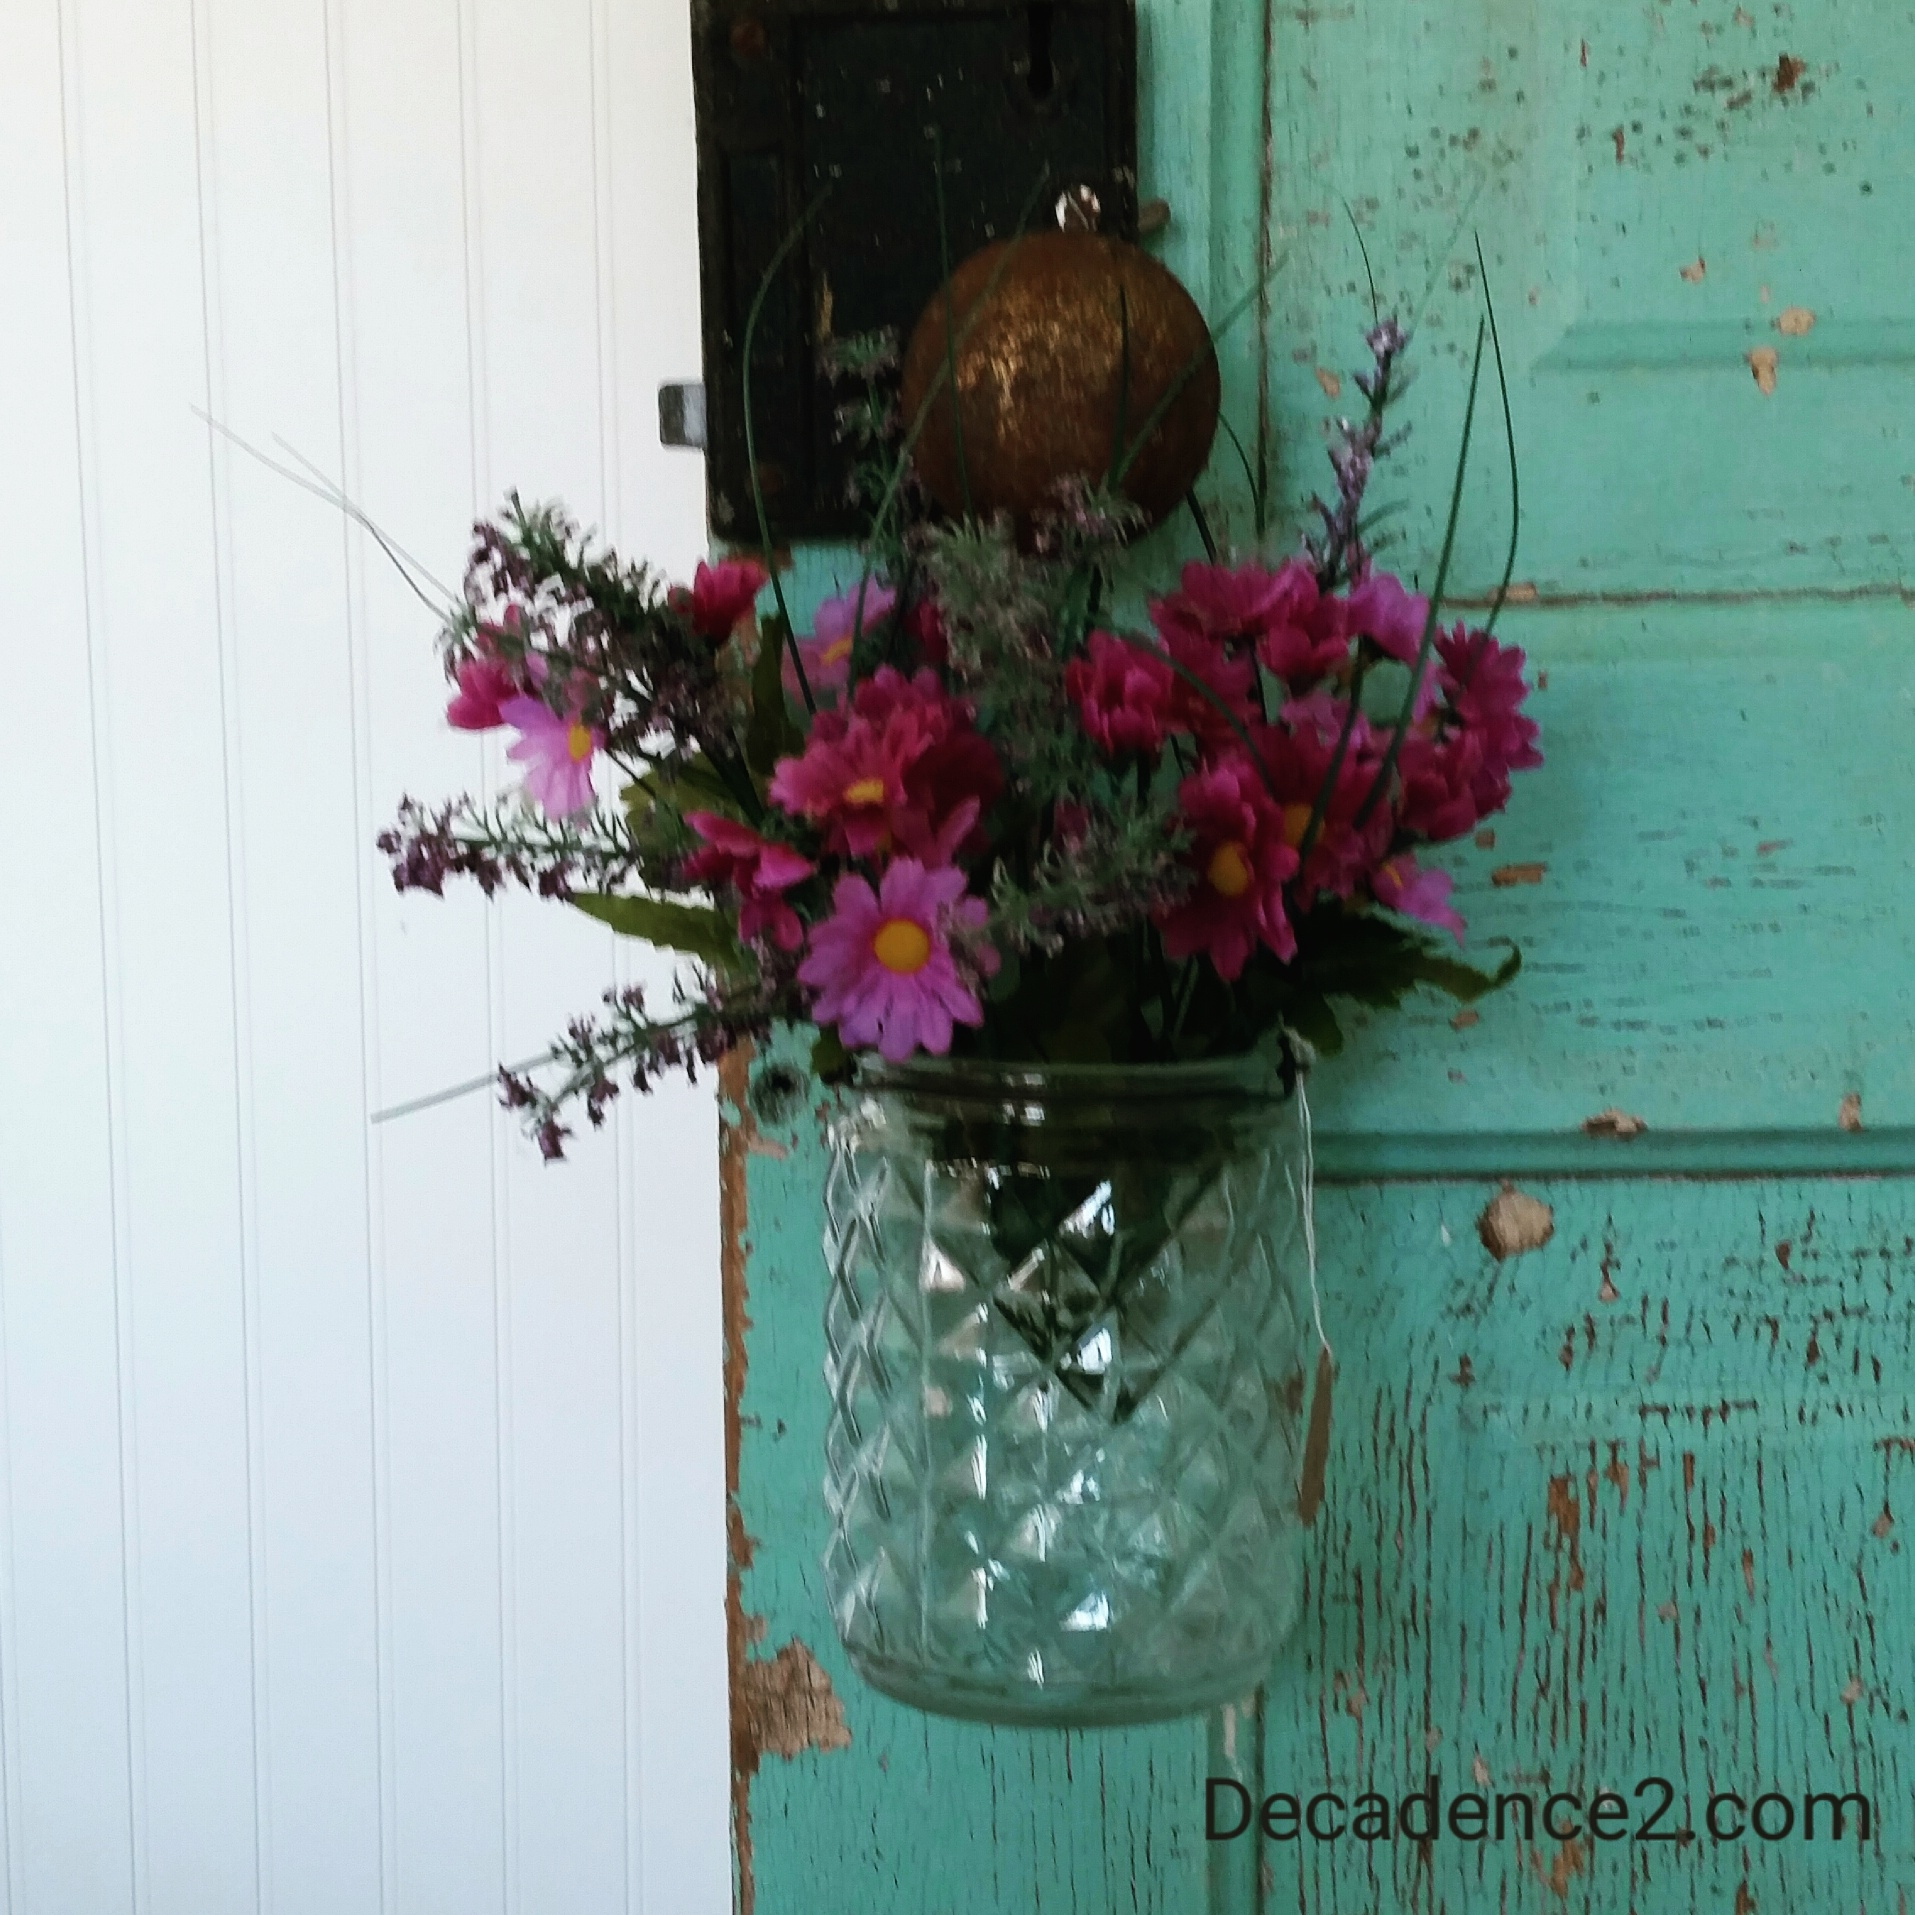 purpleflowers glass vase turquoise door decadence2